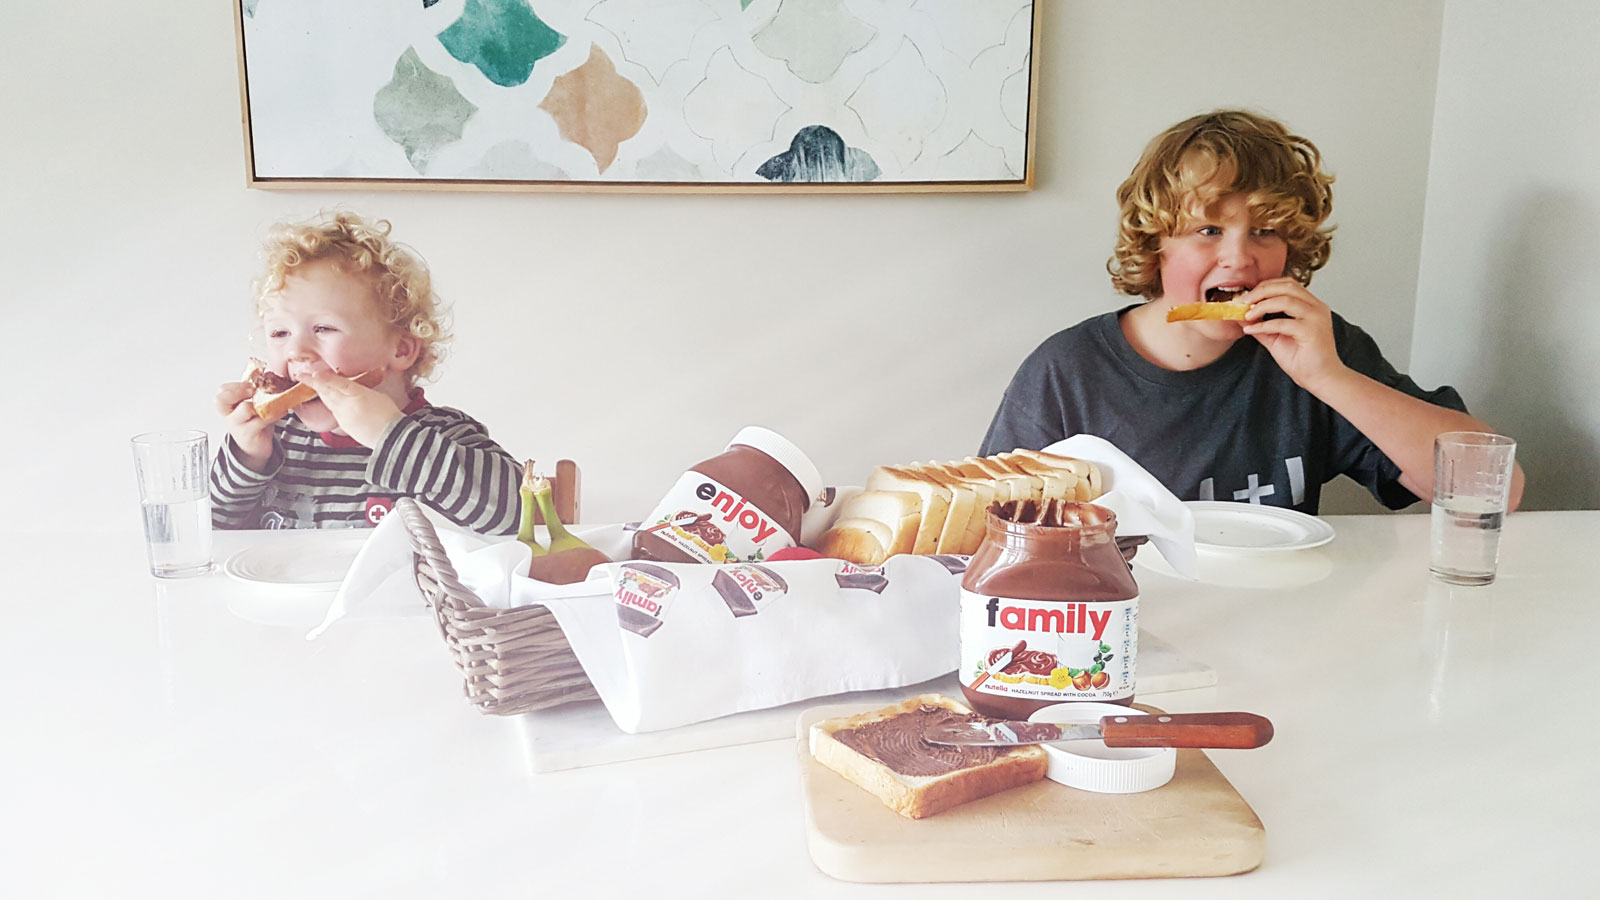 New Zealand's Top Mummy Blogger Parenting Travel Blog Family Kids Nutella